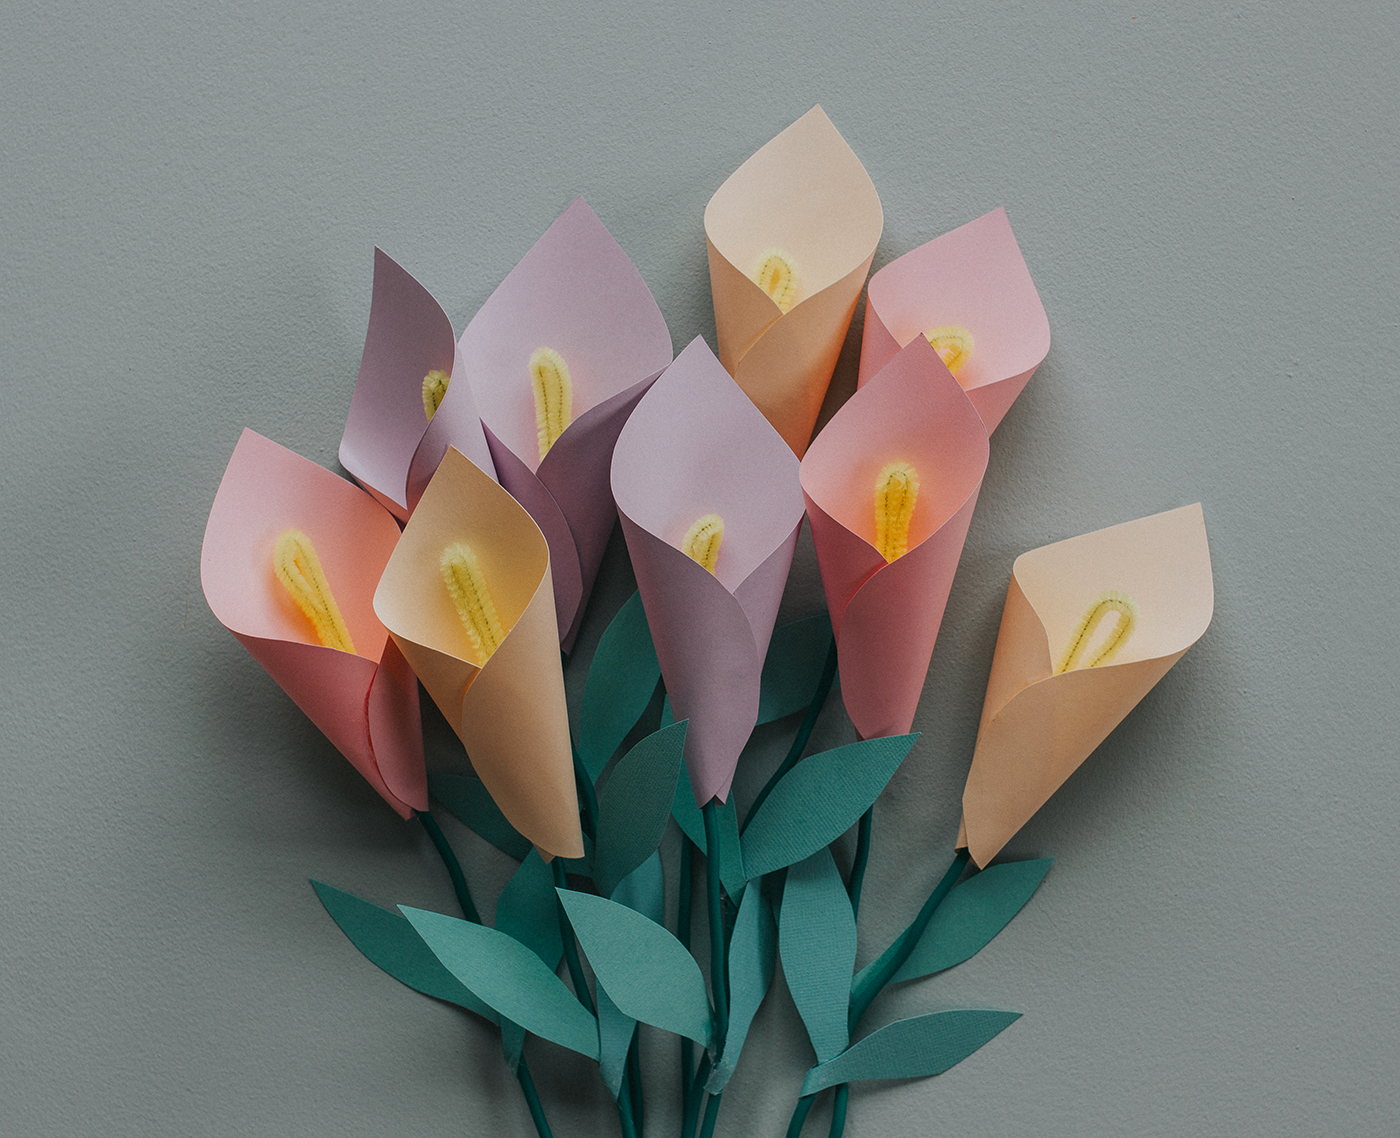 Low_res_7_DIY_ Paper_Flowers_by_cleverpoppy.jpg